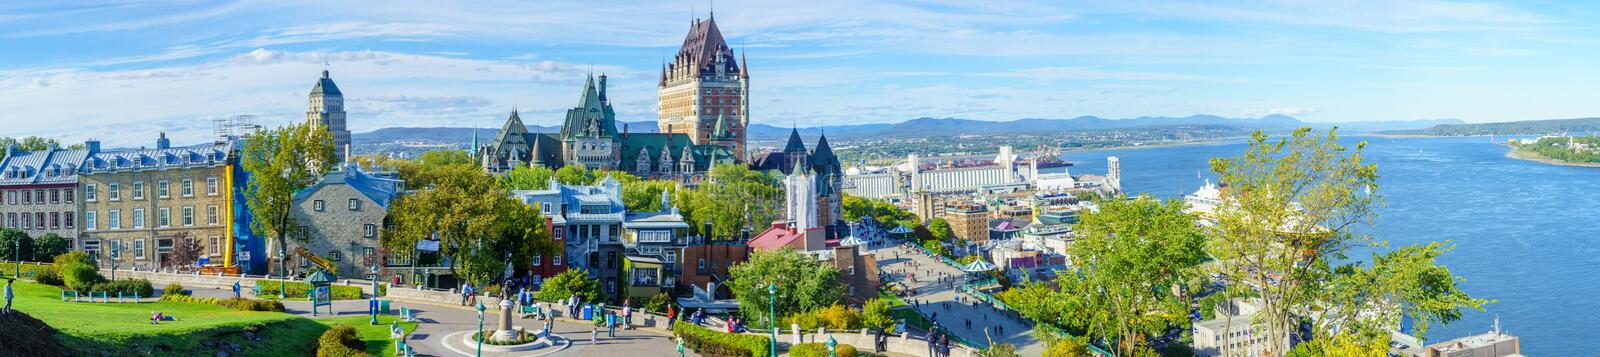 Panoramic view of old town and Saint Lawrence River, Quebec Cit stock photo